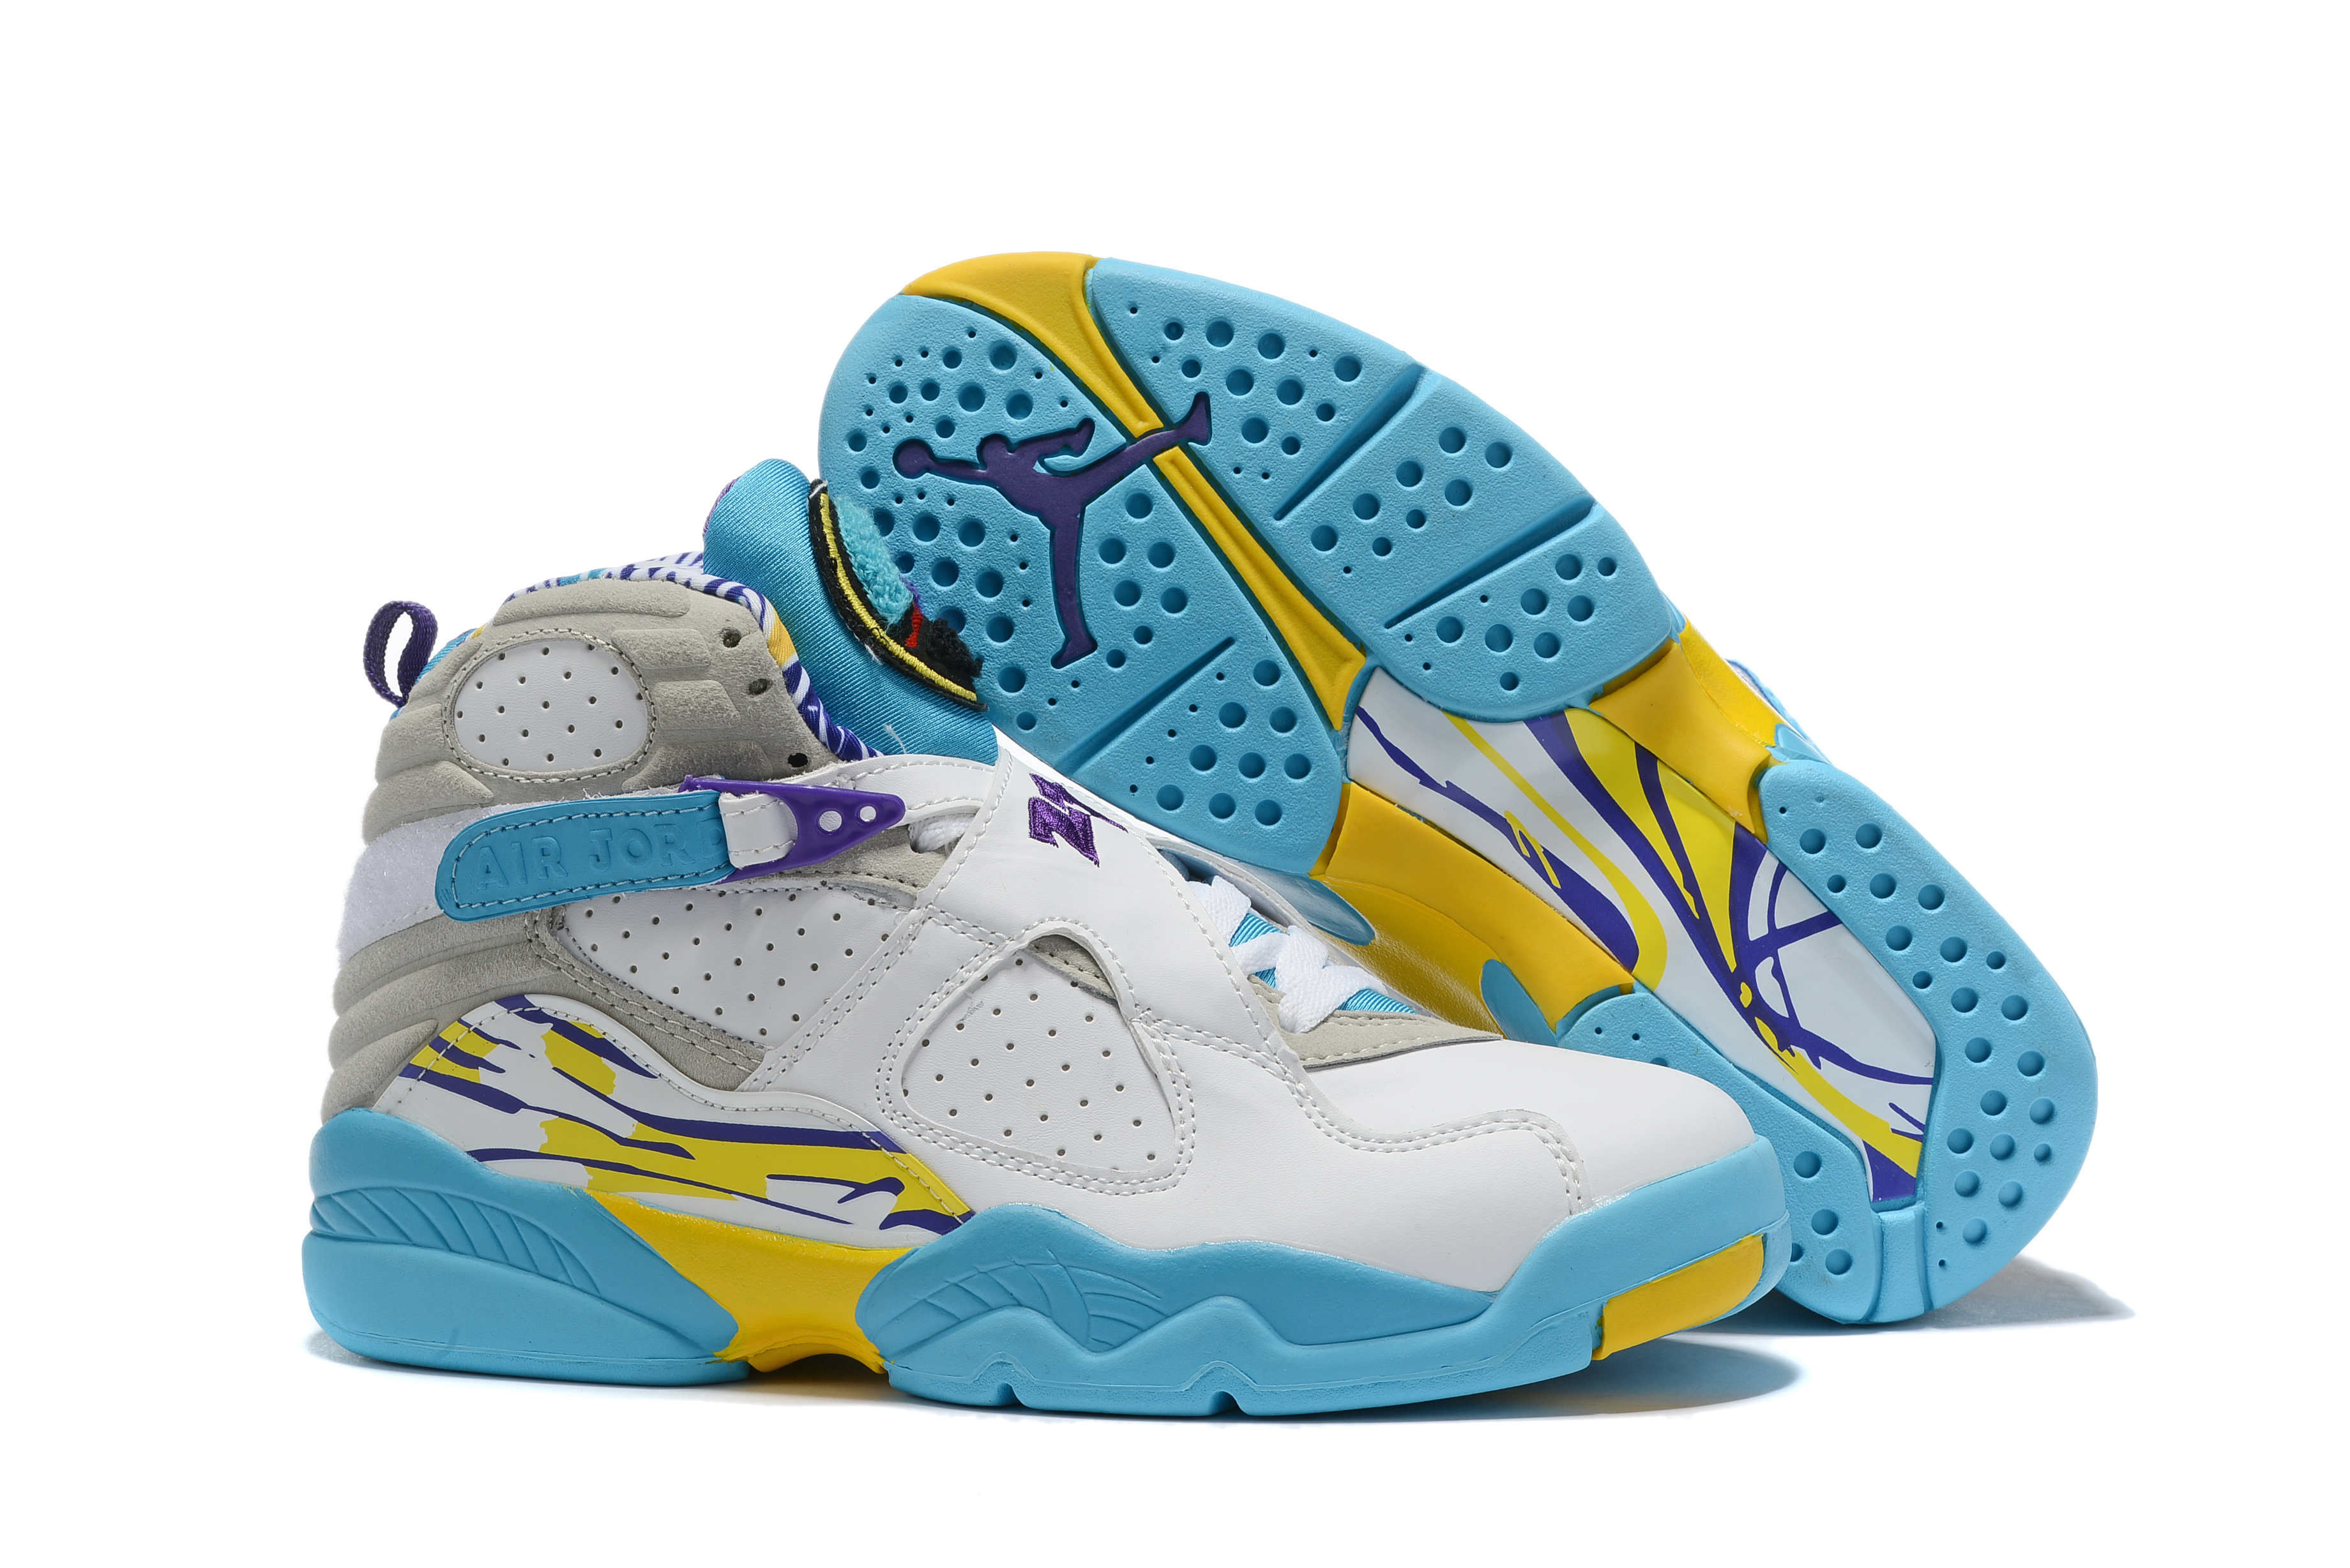 2019 Air Jordan 8 White Jade Blue Grey Yellow Shoes